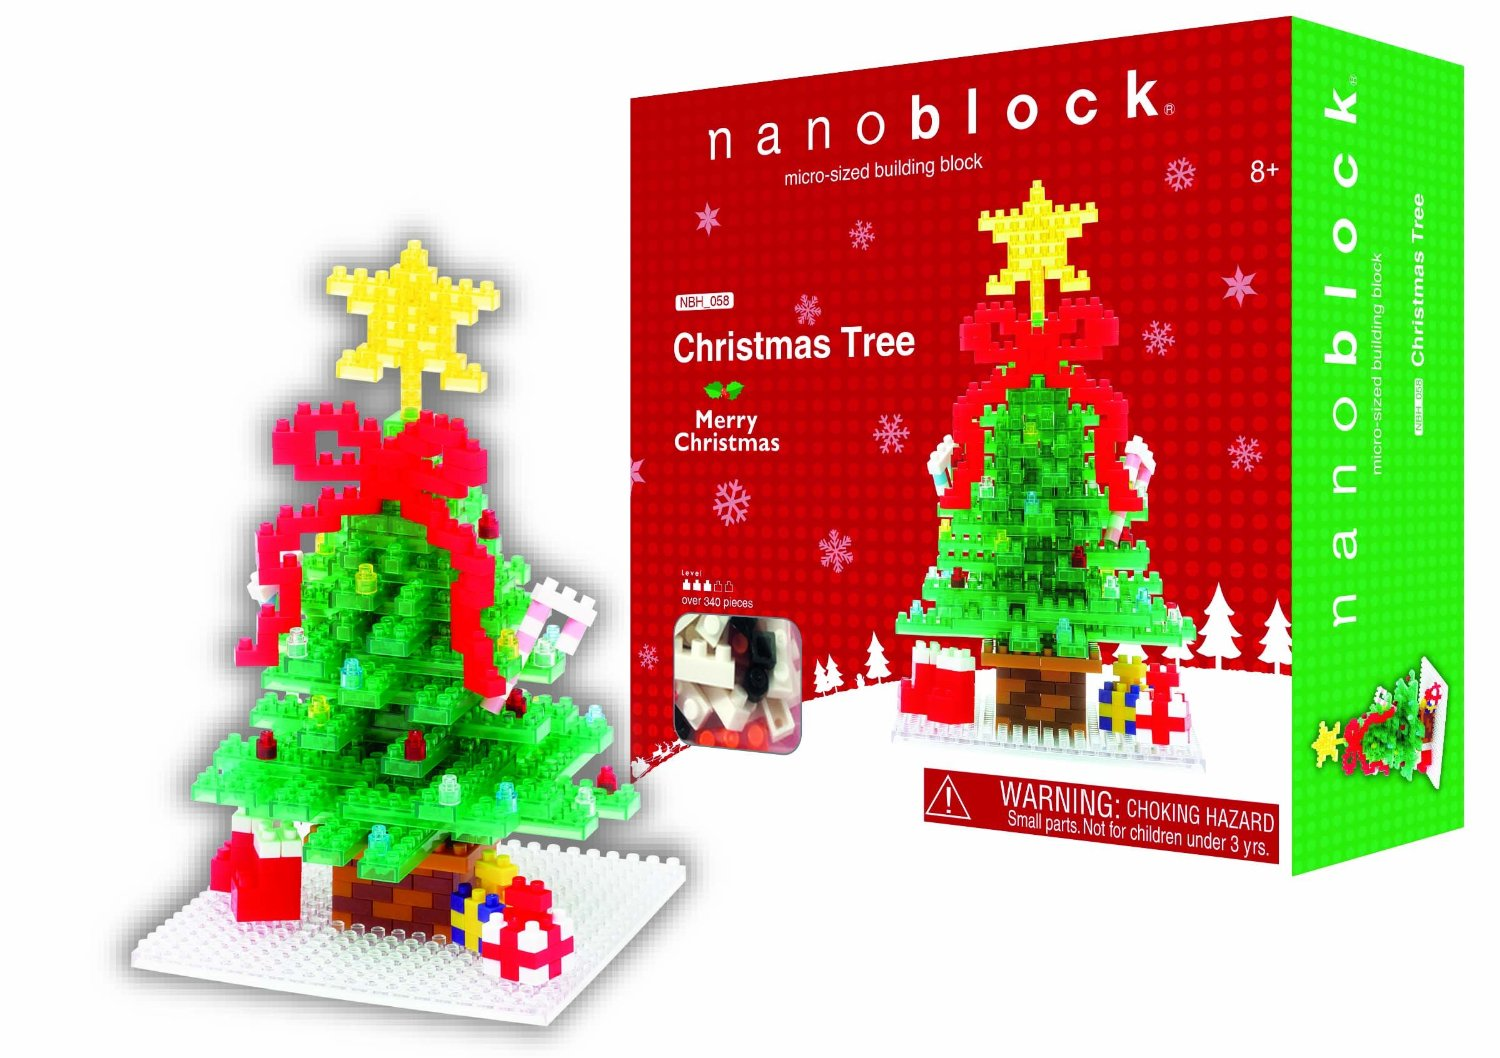 Nanoblock Christmas Tree by Schylling